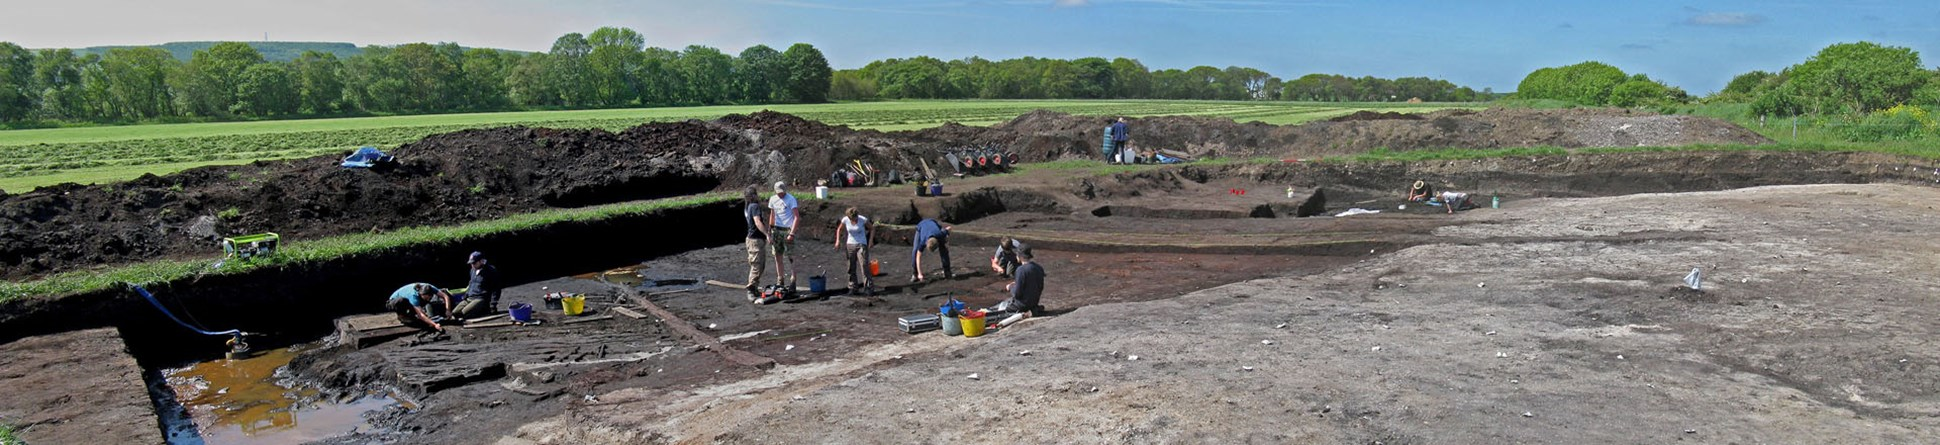 Colour photograph showing lots of archaeologists digging in a trench with spoilheaps behind; some timbers are visible left